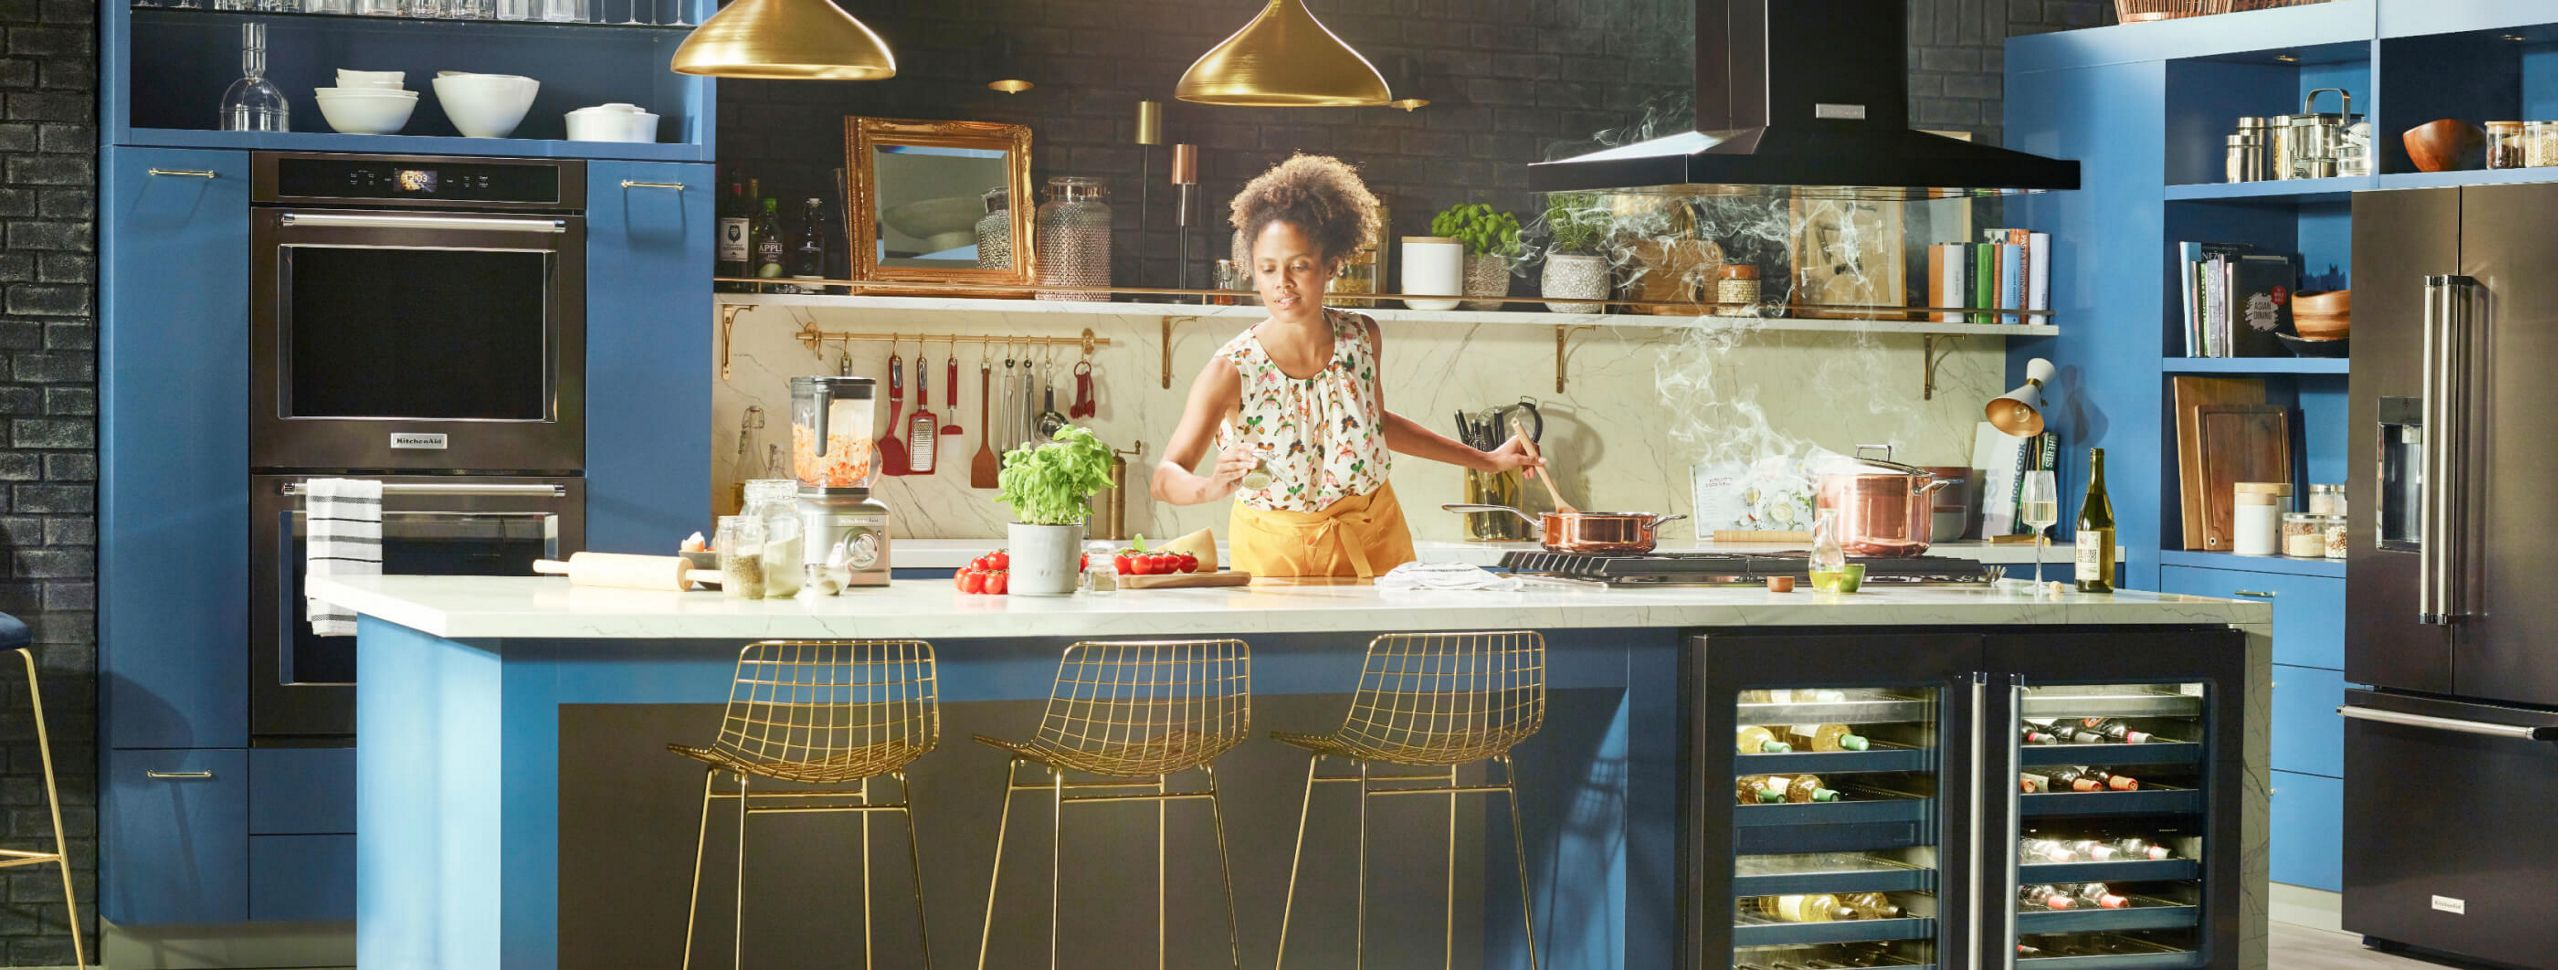 A woman diligently making in her clean, bright kitchen.